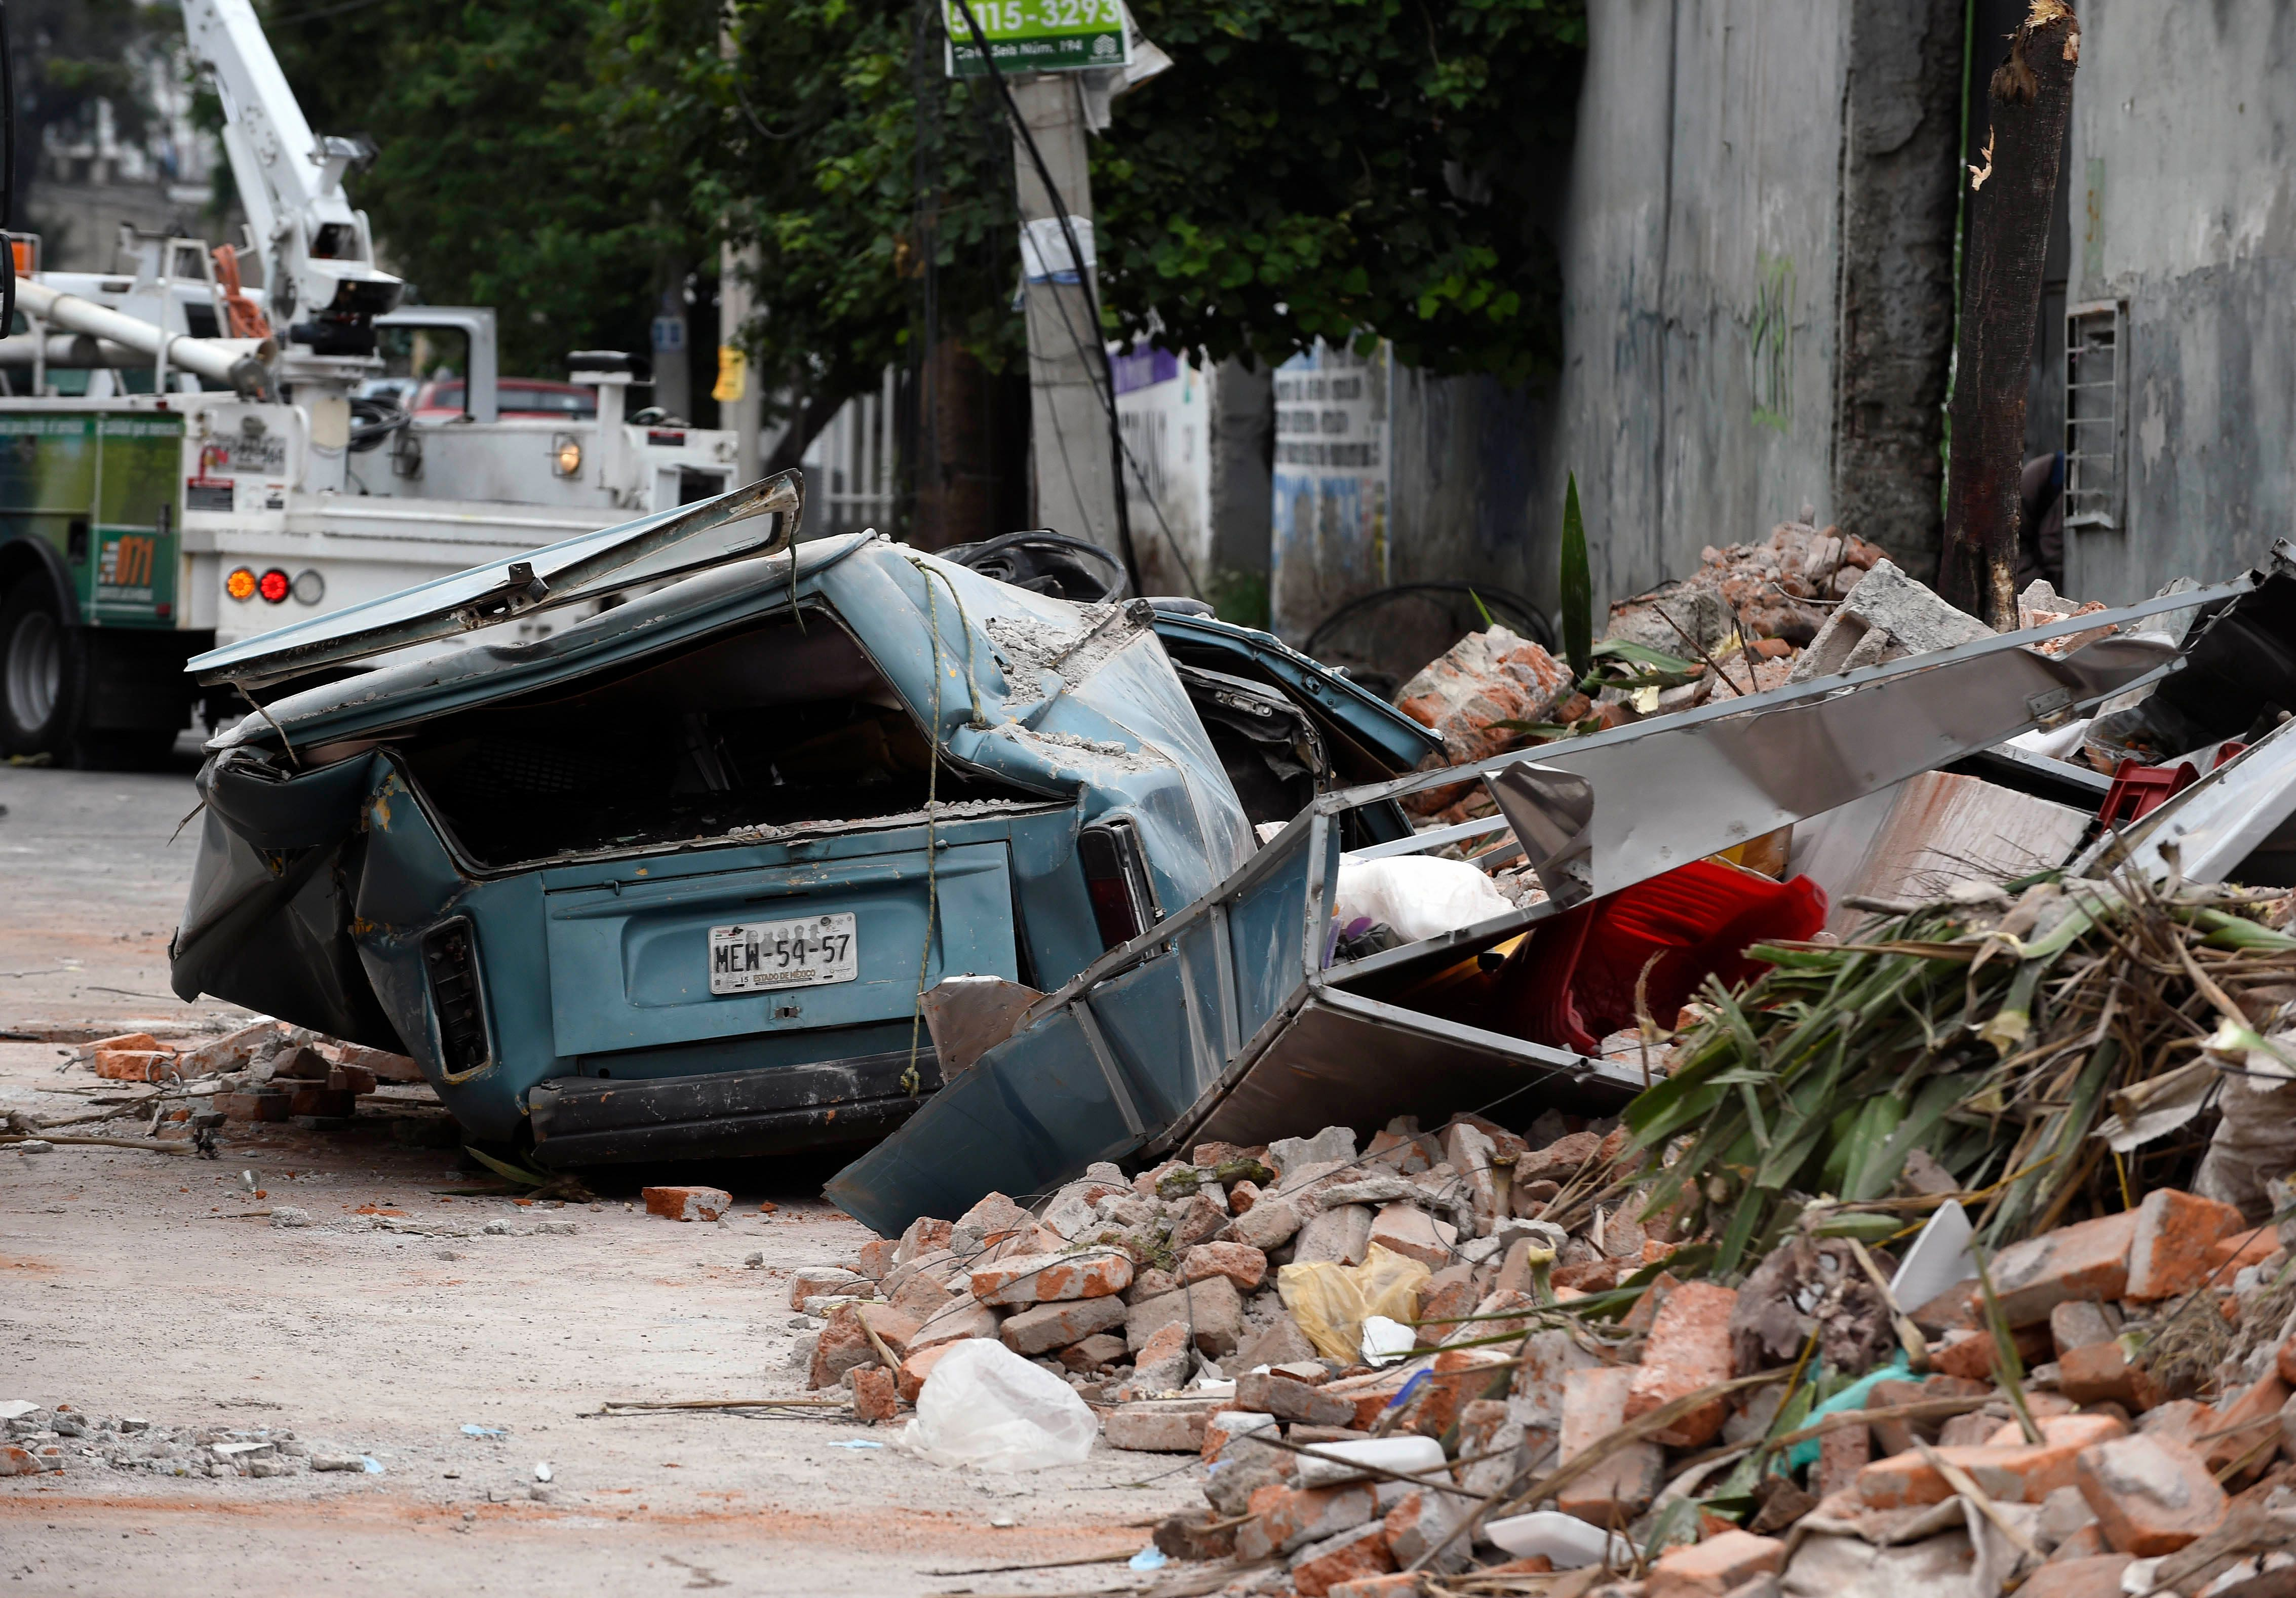 Mexico has suffered from a powerful earthquake 18